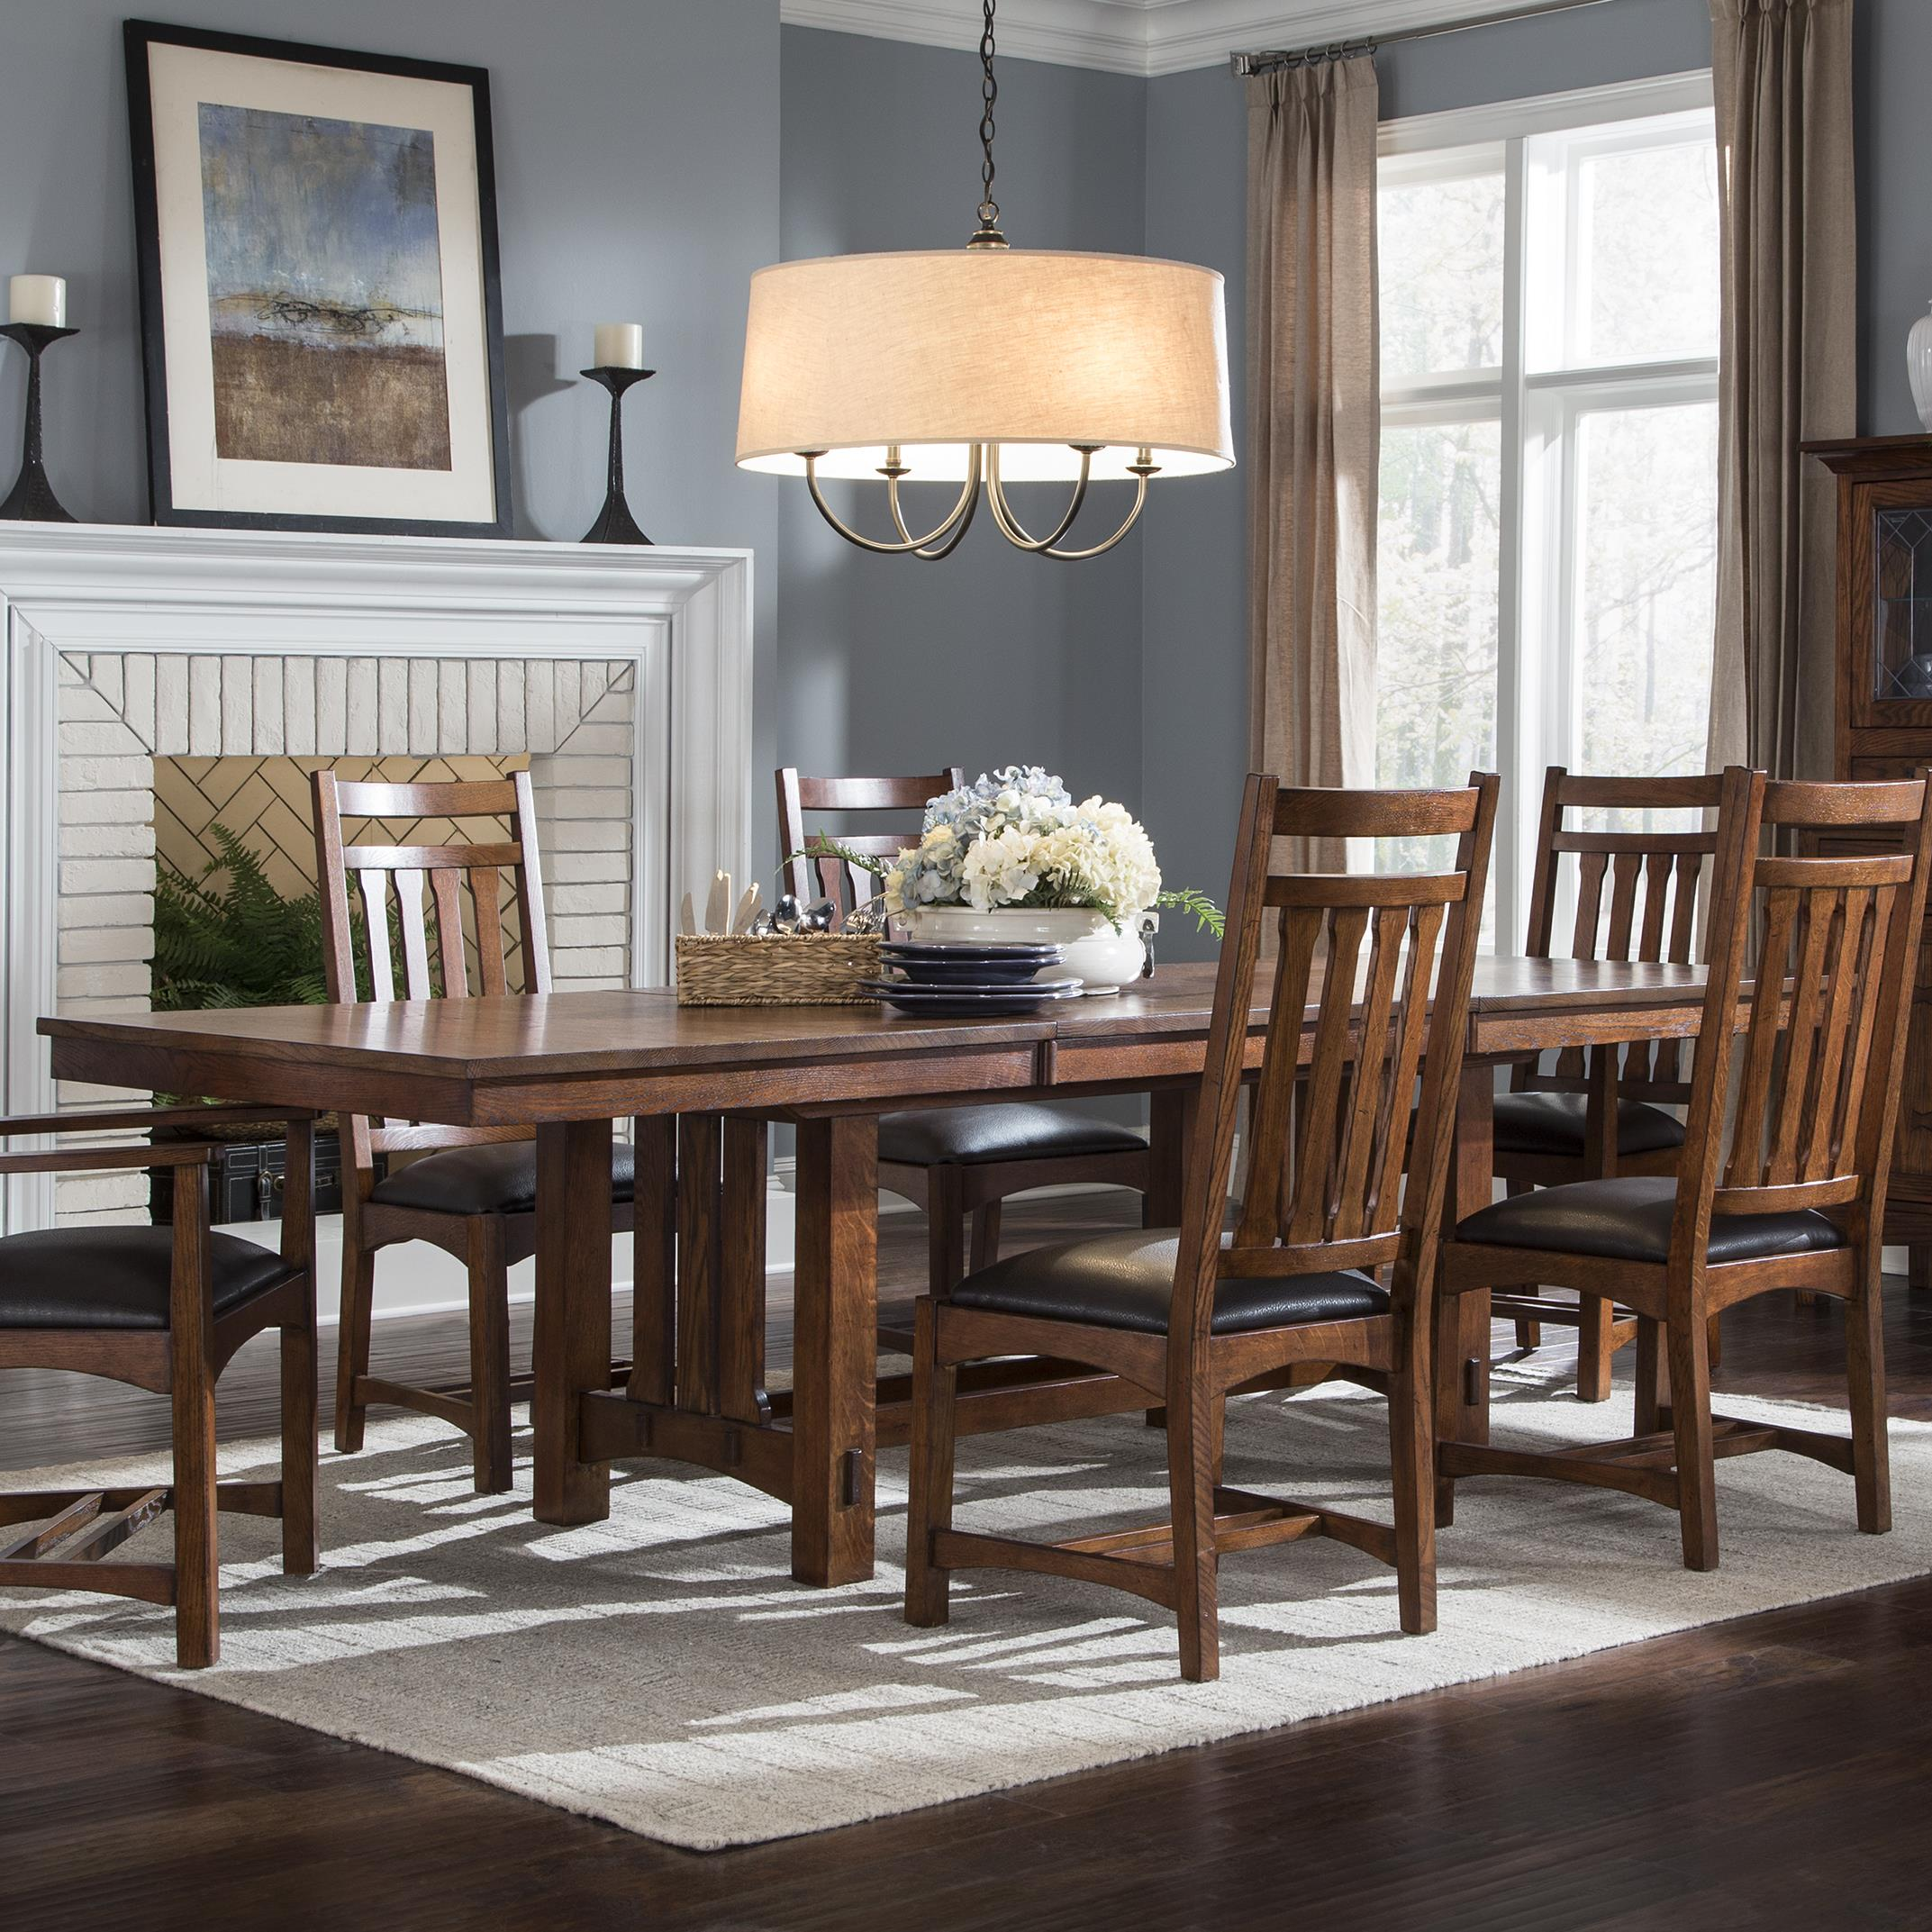 Home Dining Room Furniture Dining Room Table Intercon Oak Park Trestle